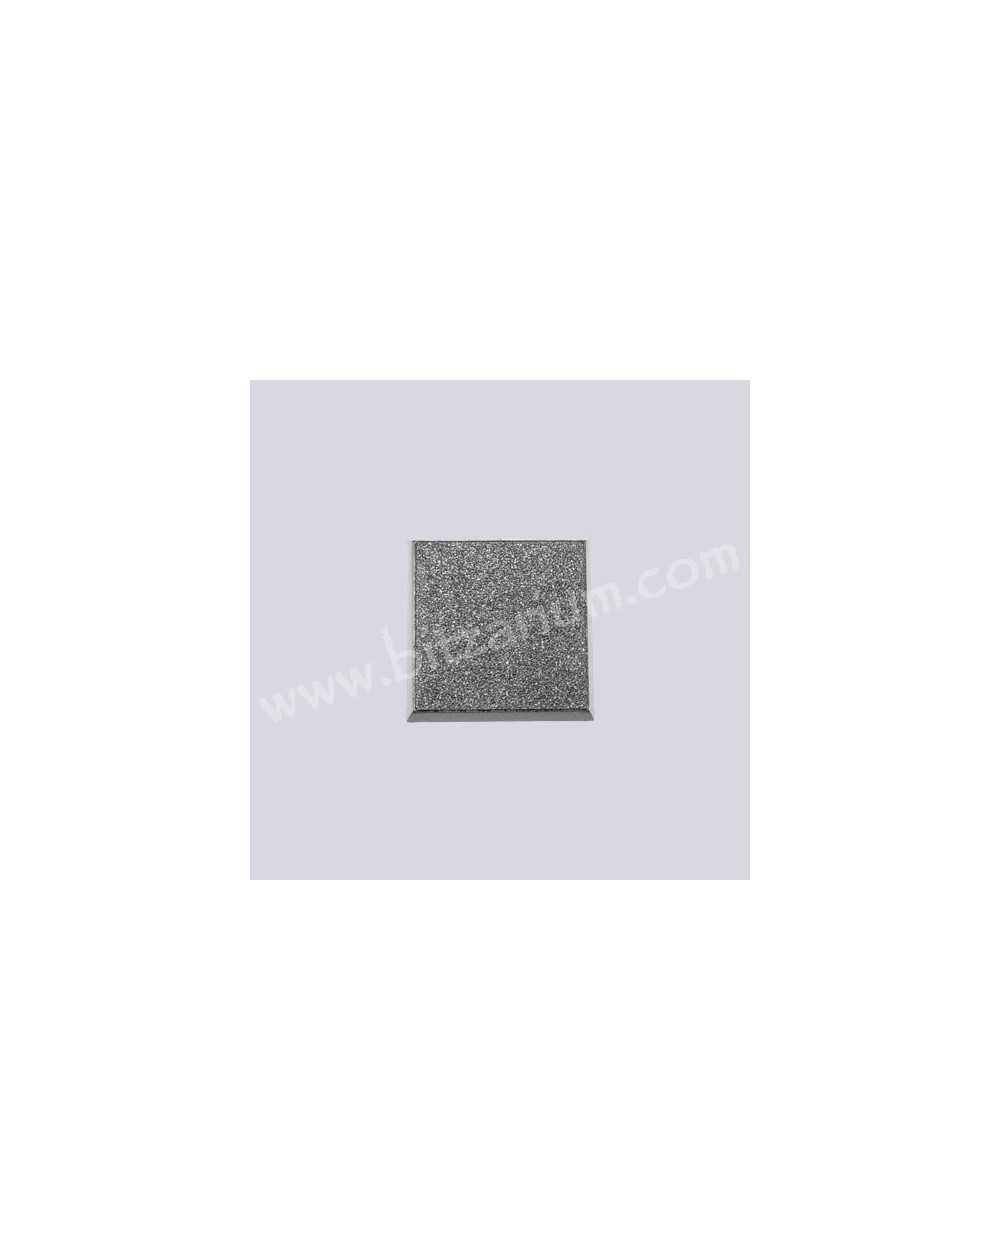 25mm/0,98in solid square Base 01